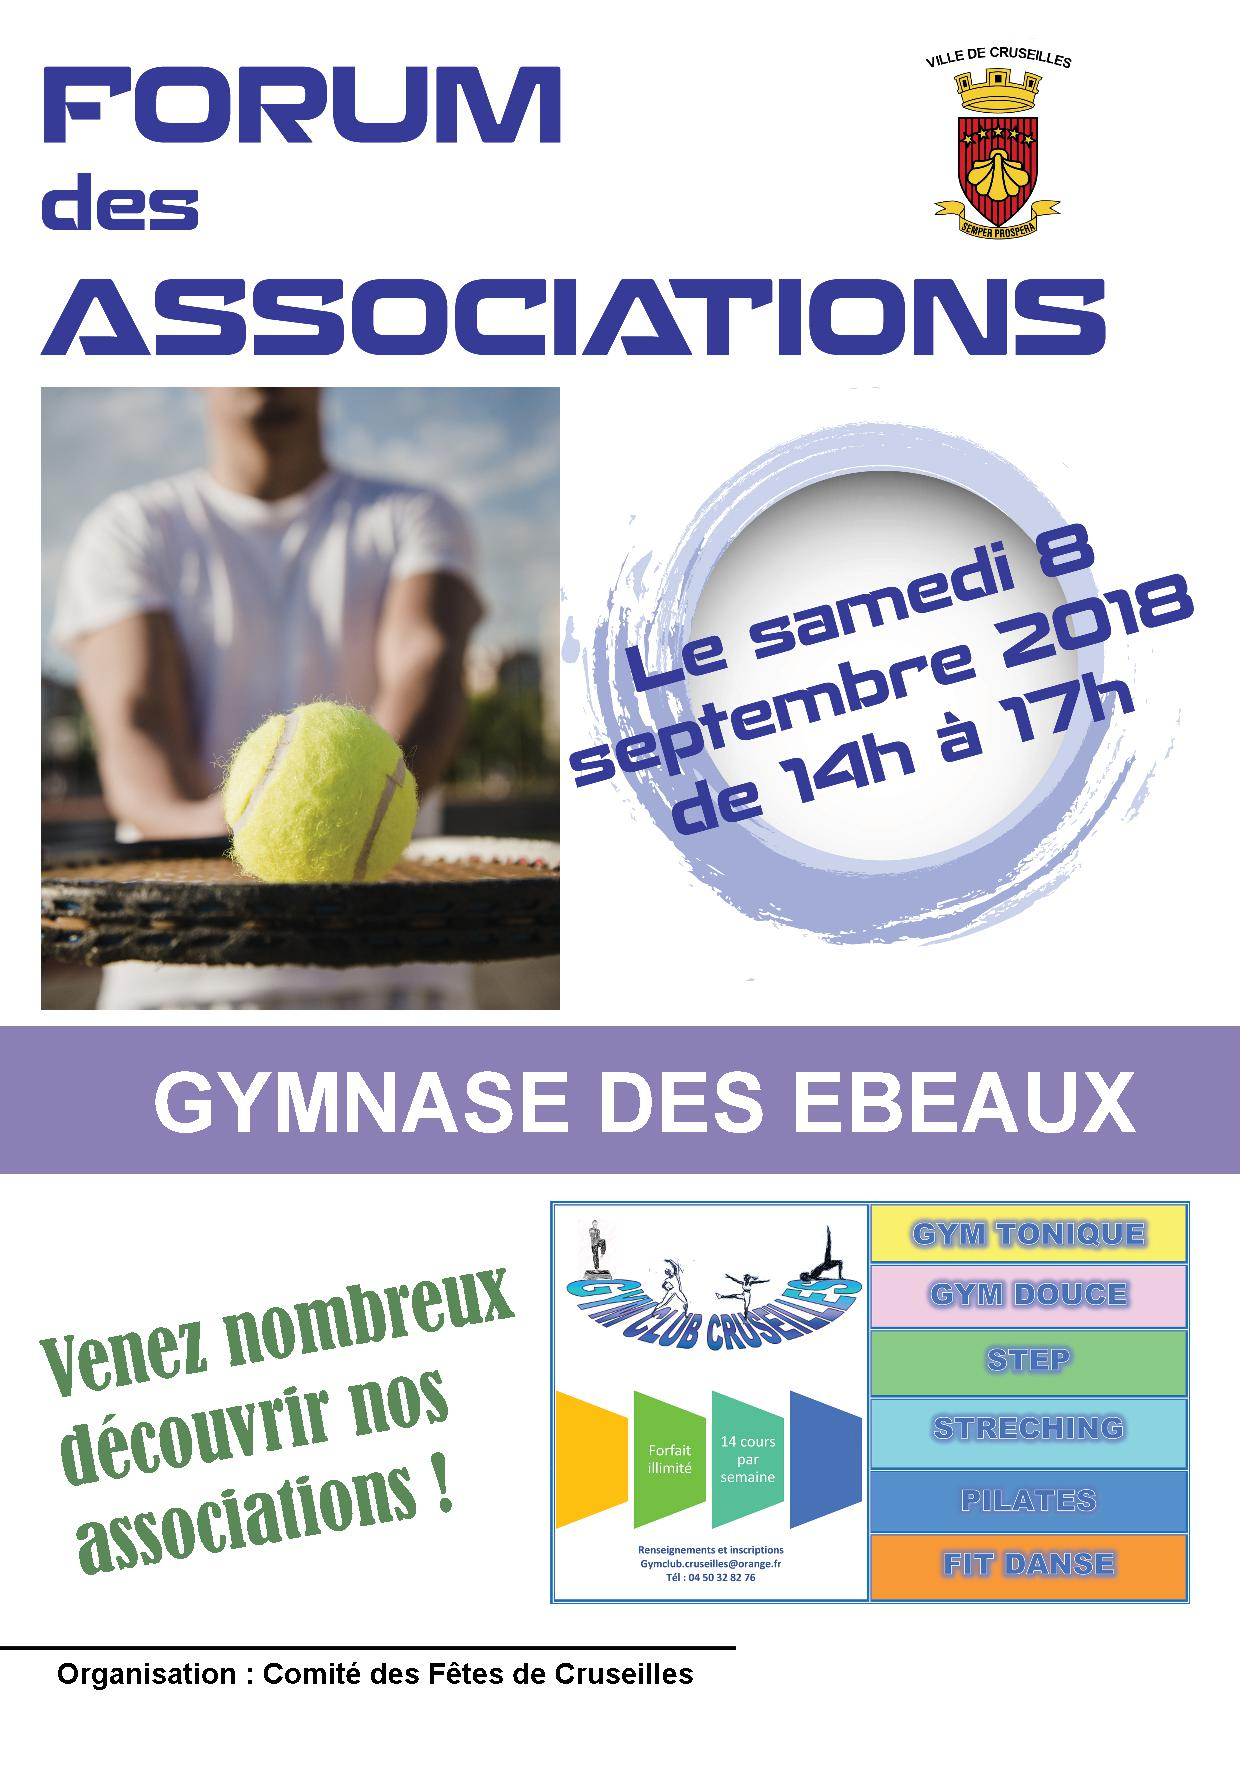 forum-des-associations-2018